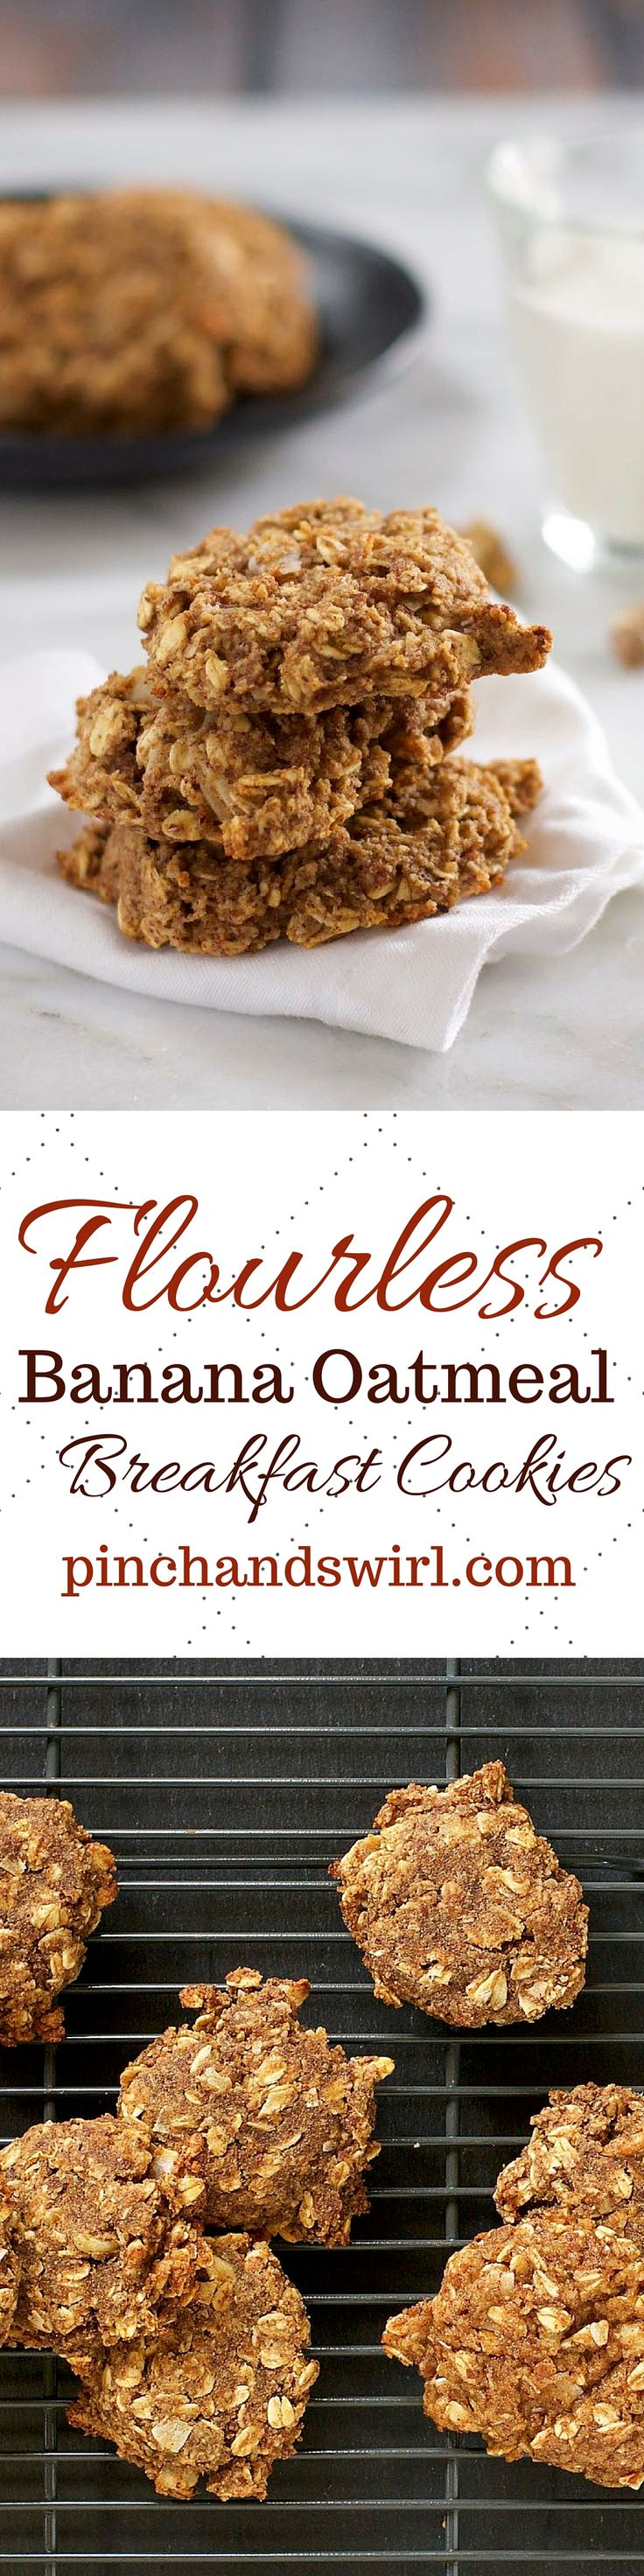 These Flourless Oatmeal Banana Breakfast Cookies breakfast cookies are the perfect, healthy, portable breakfast for busy mornings. No refined sugar! They're gluten free and Paleo friendly.